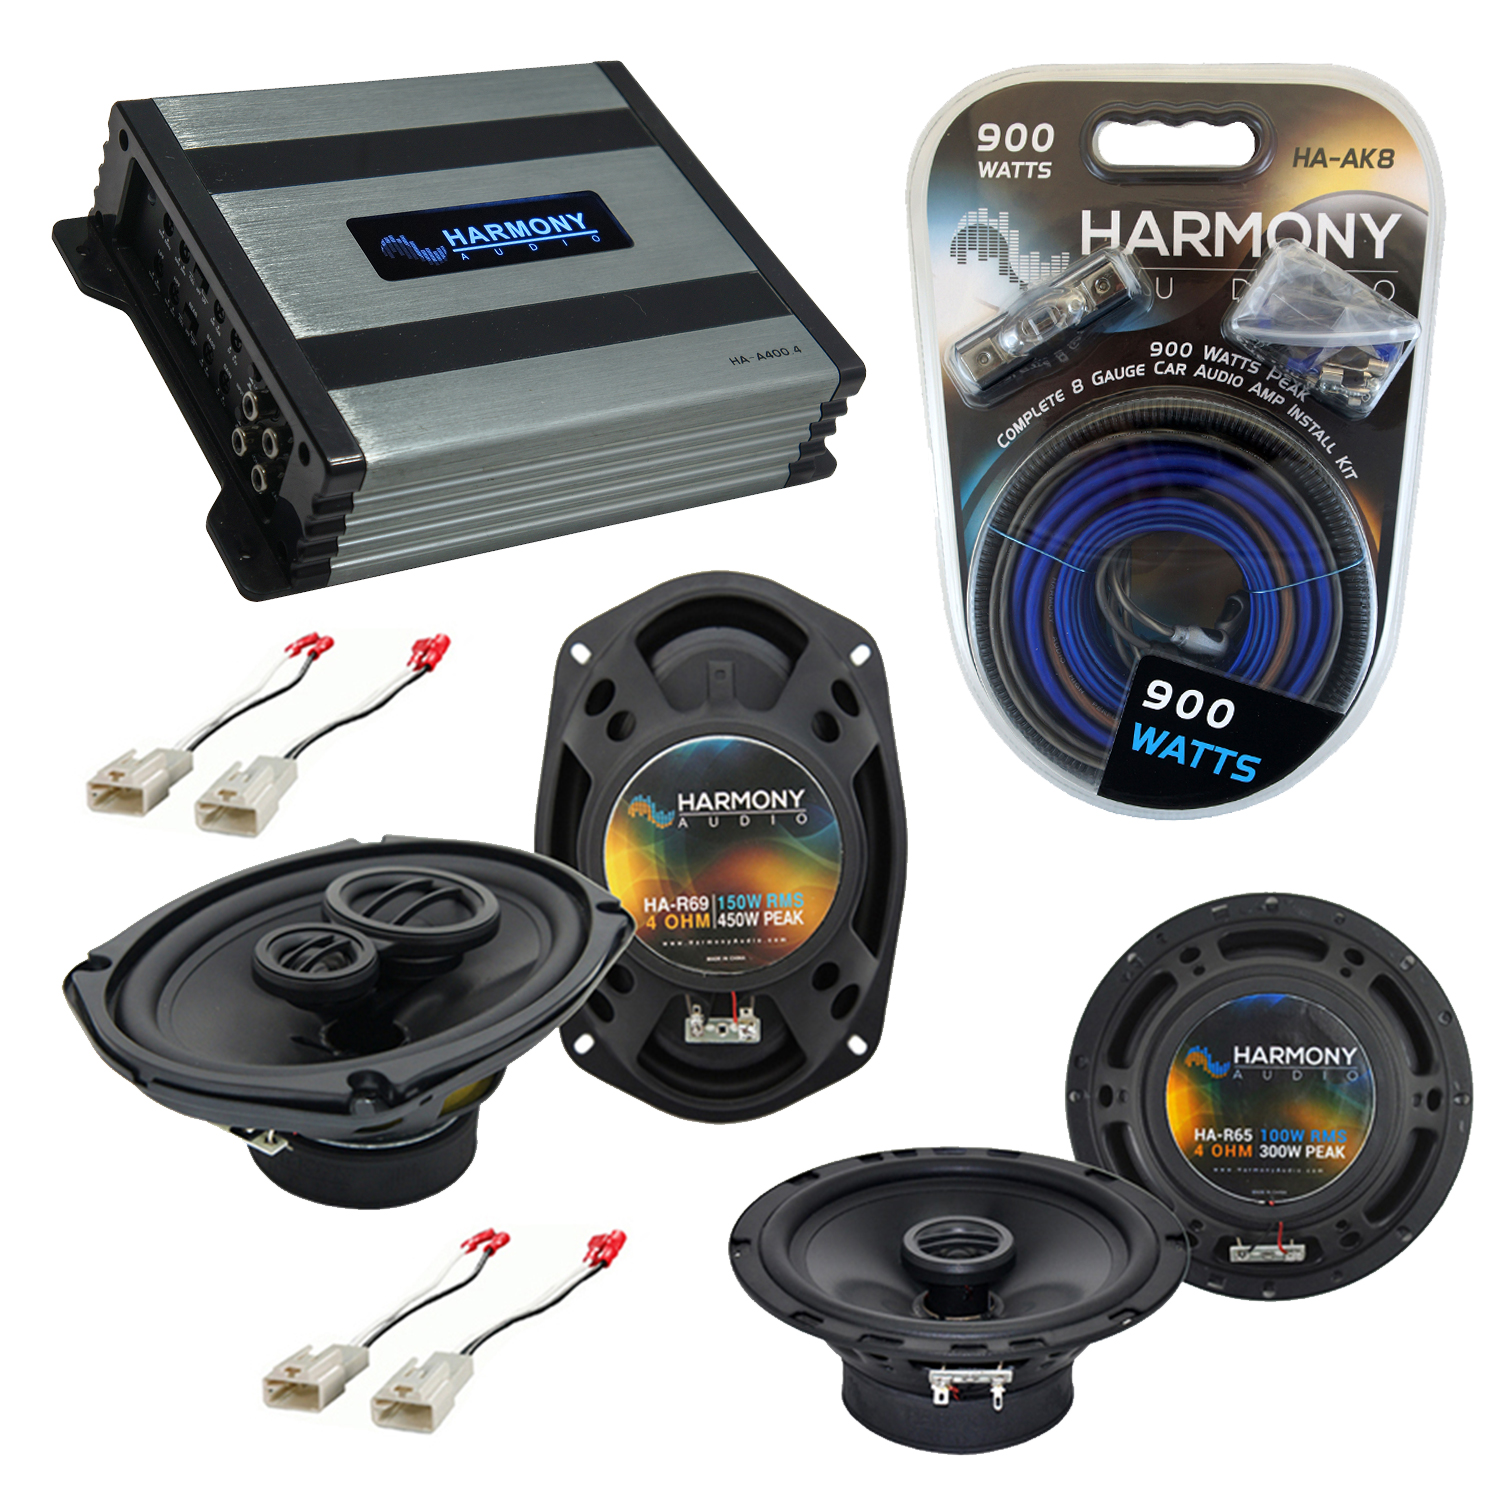 Compatible with Toyota Camry Sedan 1997-2001 OEM Speaker Replacement Harmony Speakers & Harmony HA-A400.4 Amp